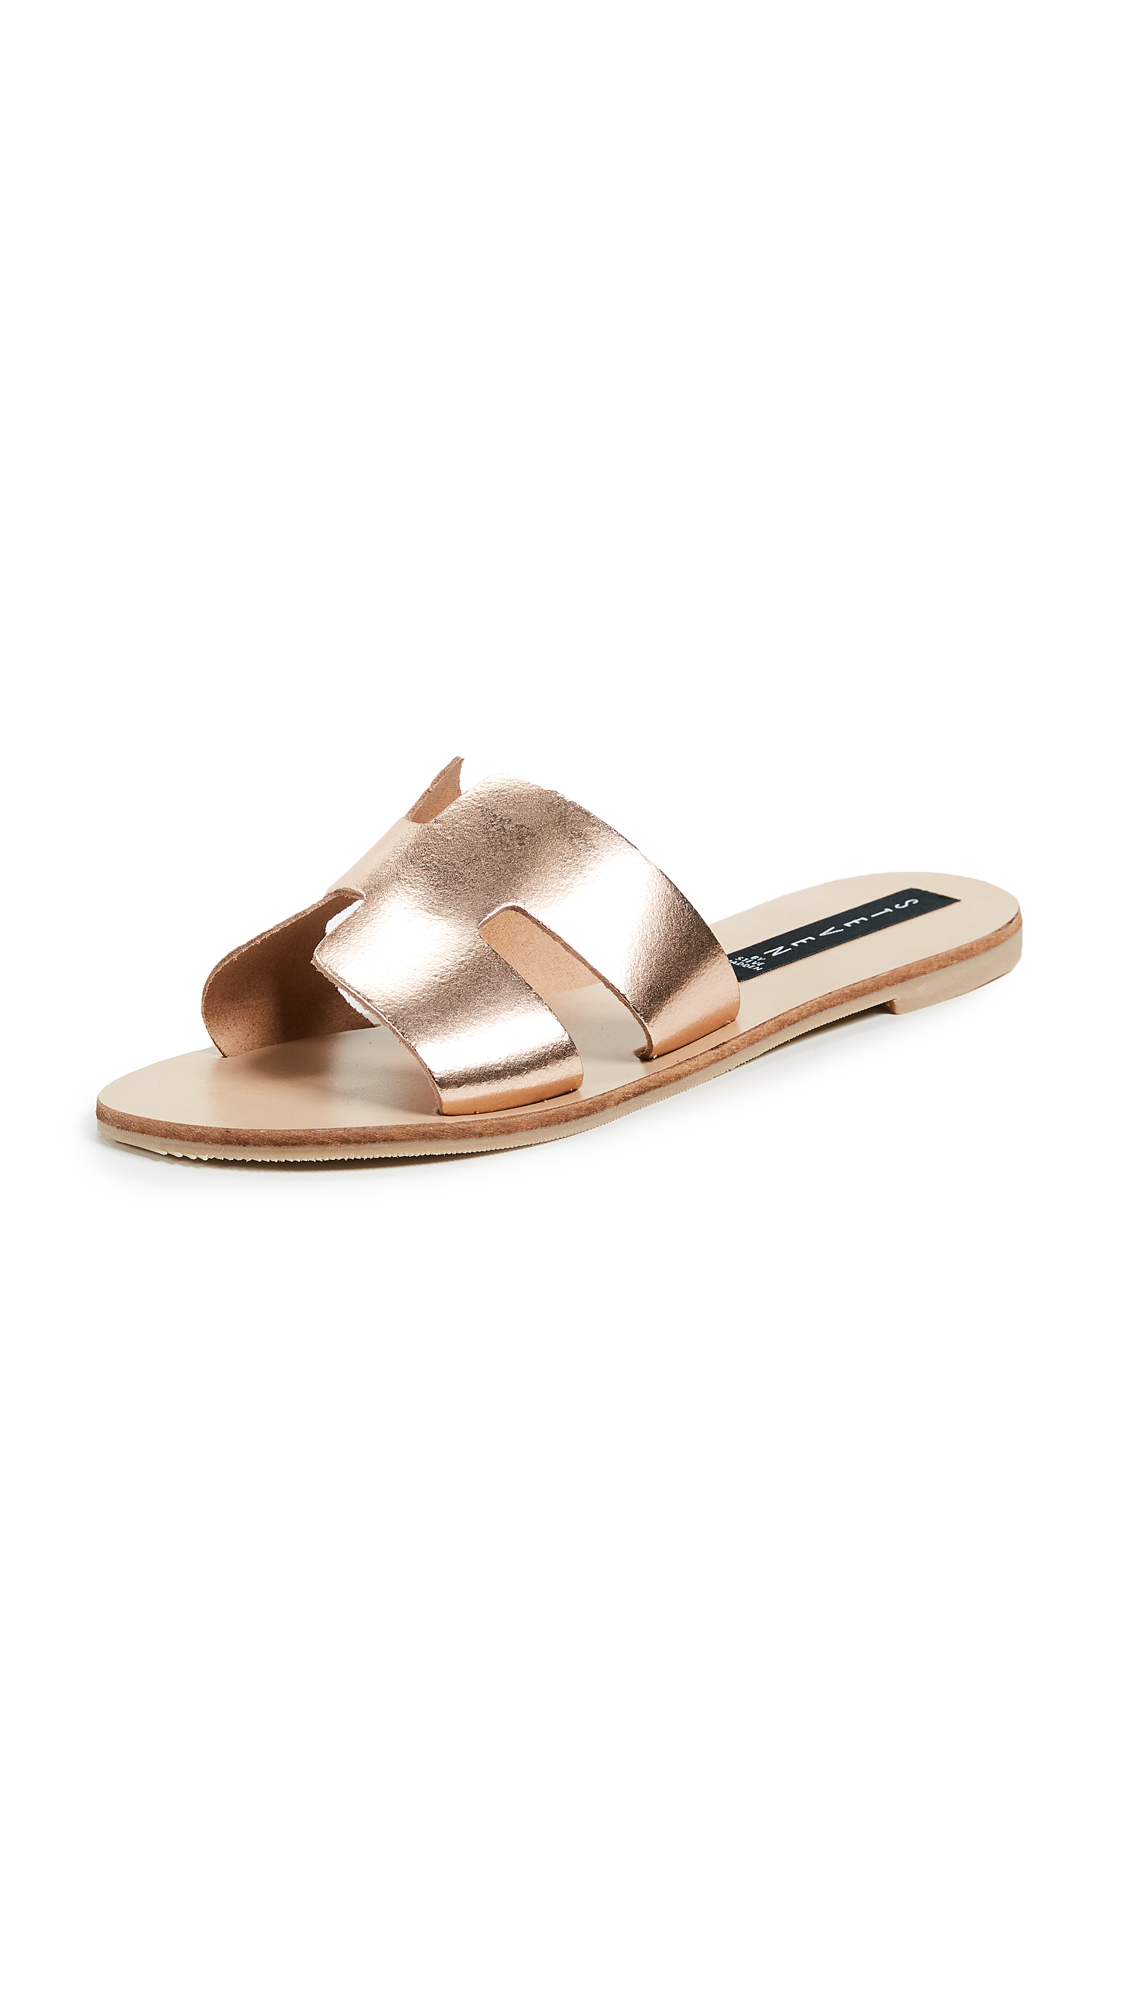 Steven Greece Slides - Rose Gold